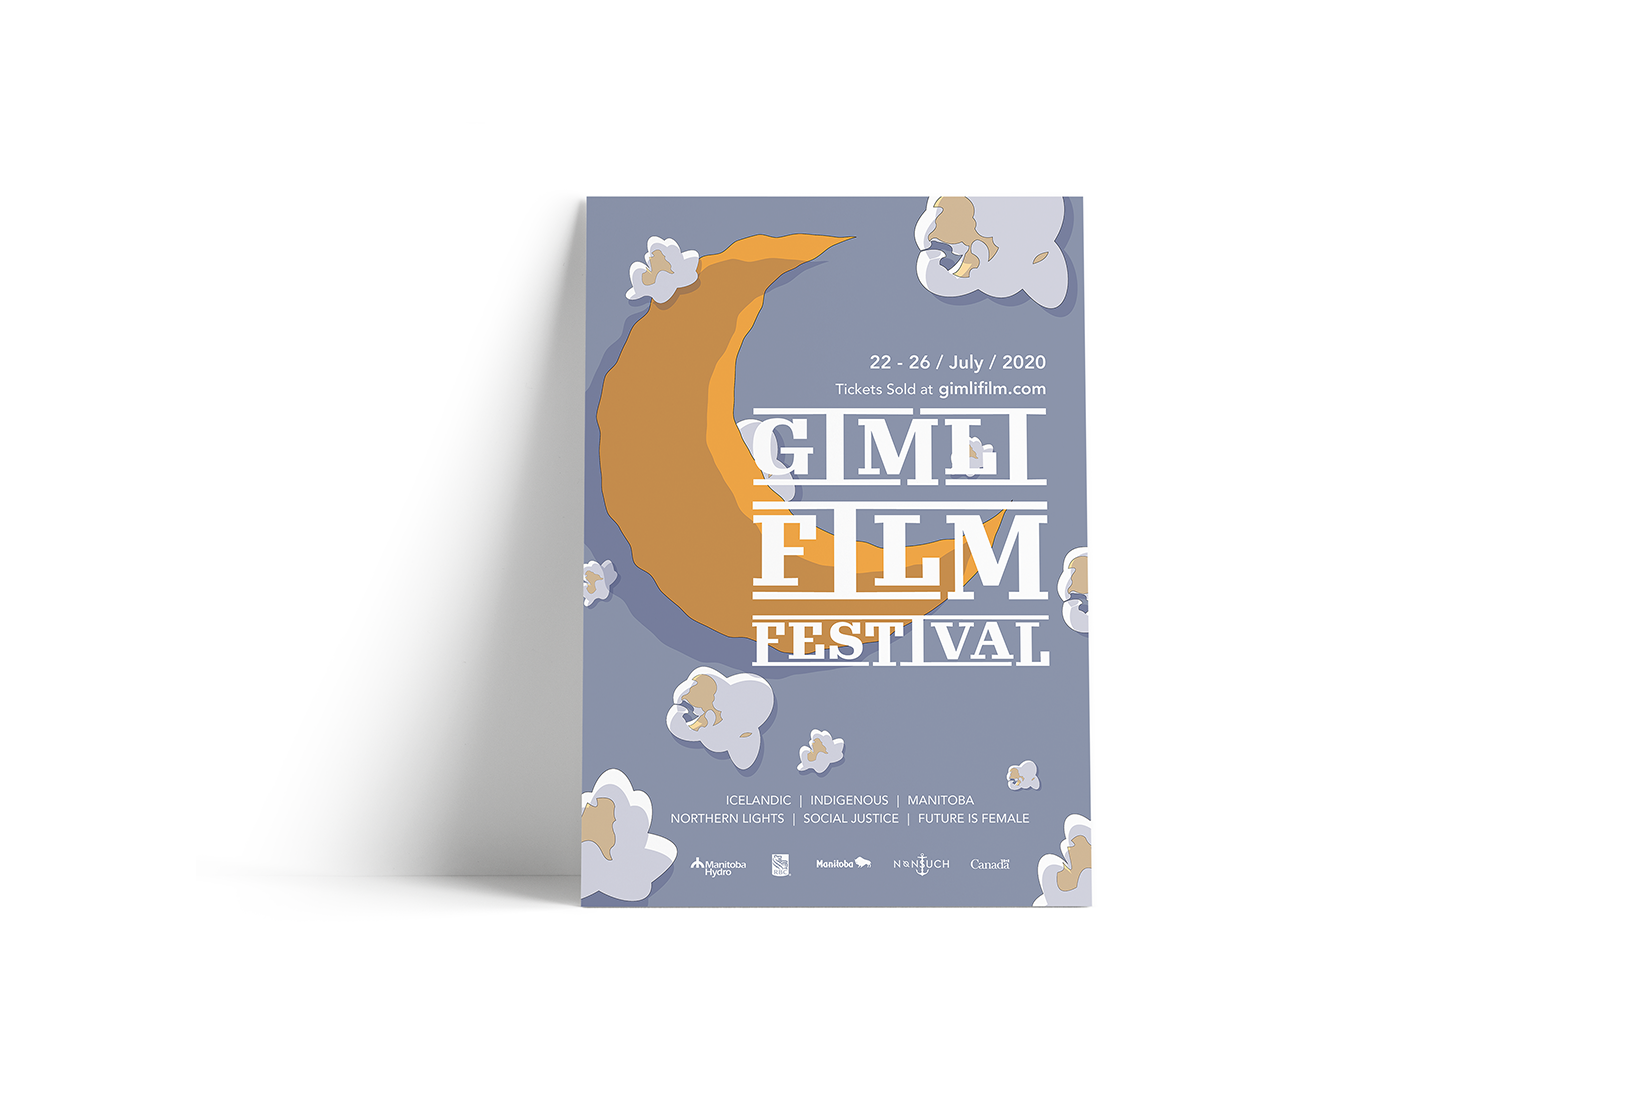 An image of the gimli film festival poster